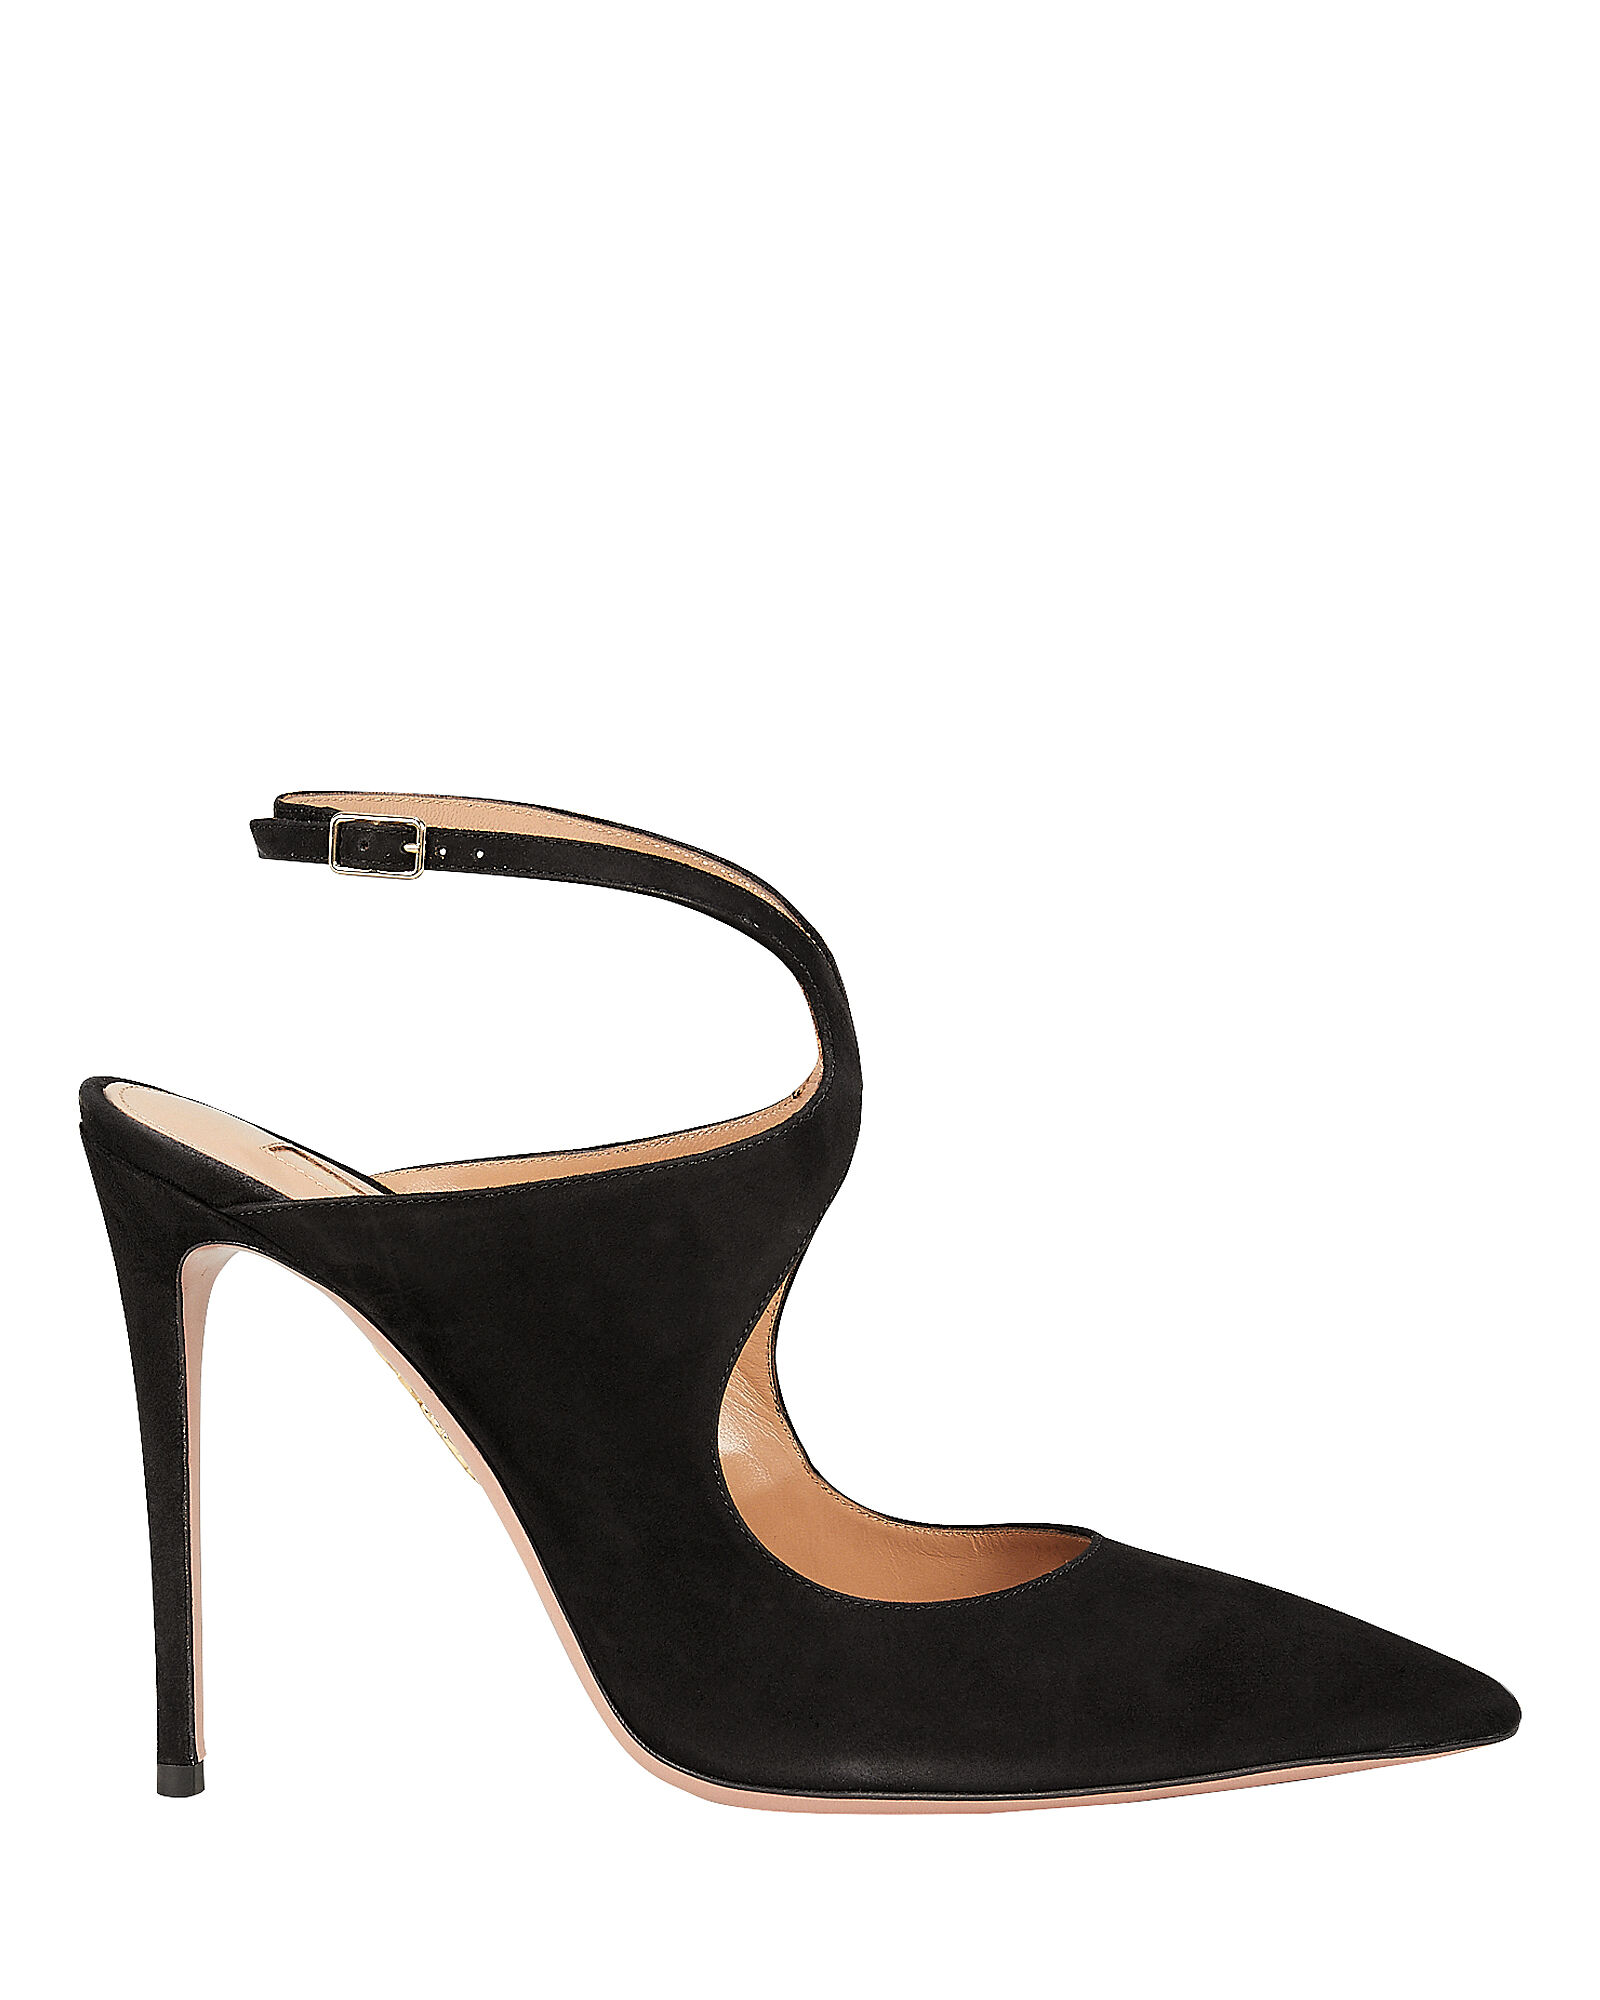 Talana Suede Pumps, BLACK, hi-res